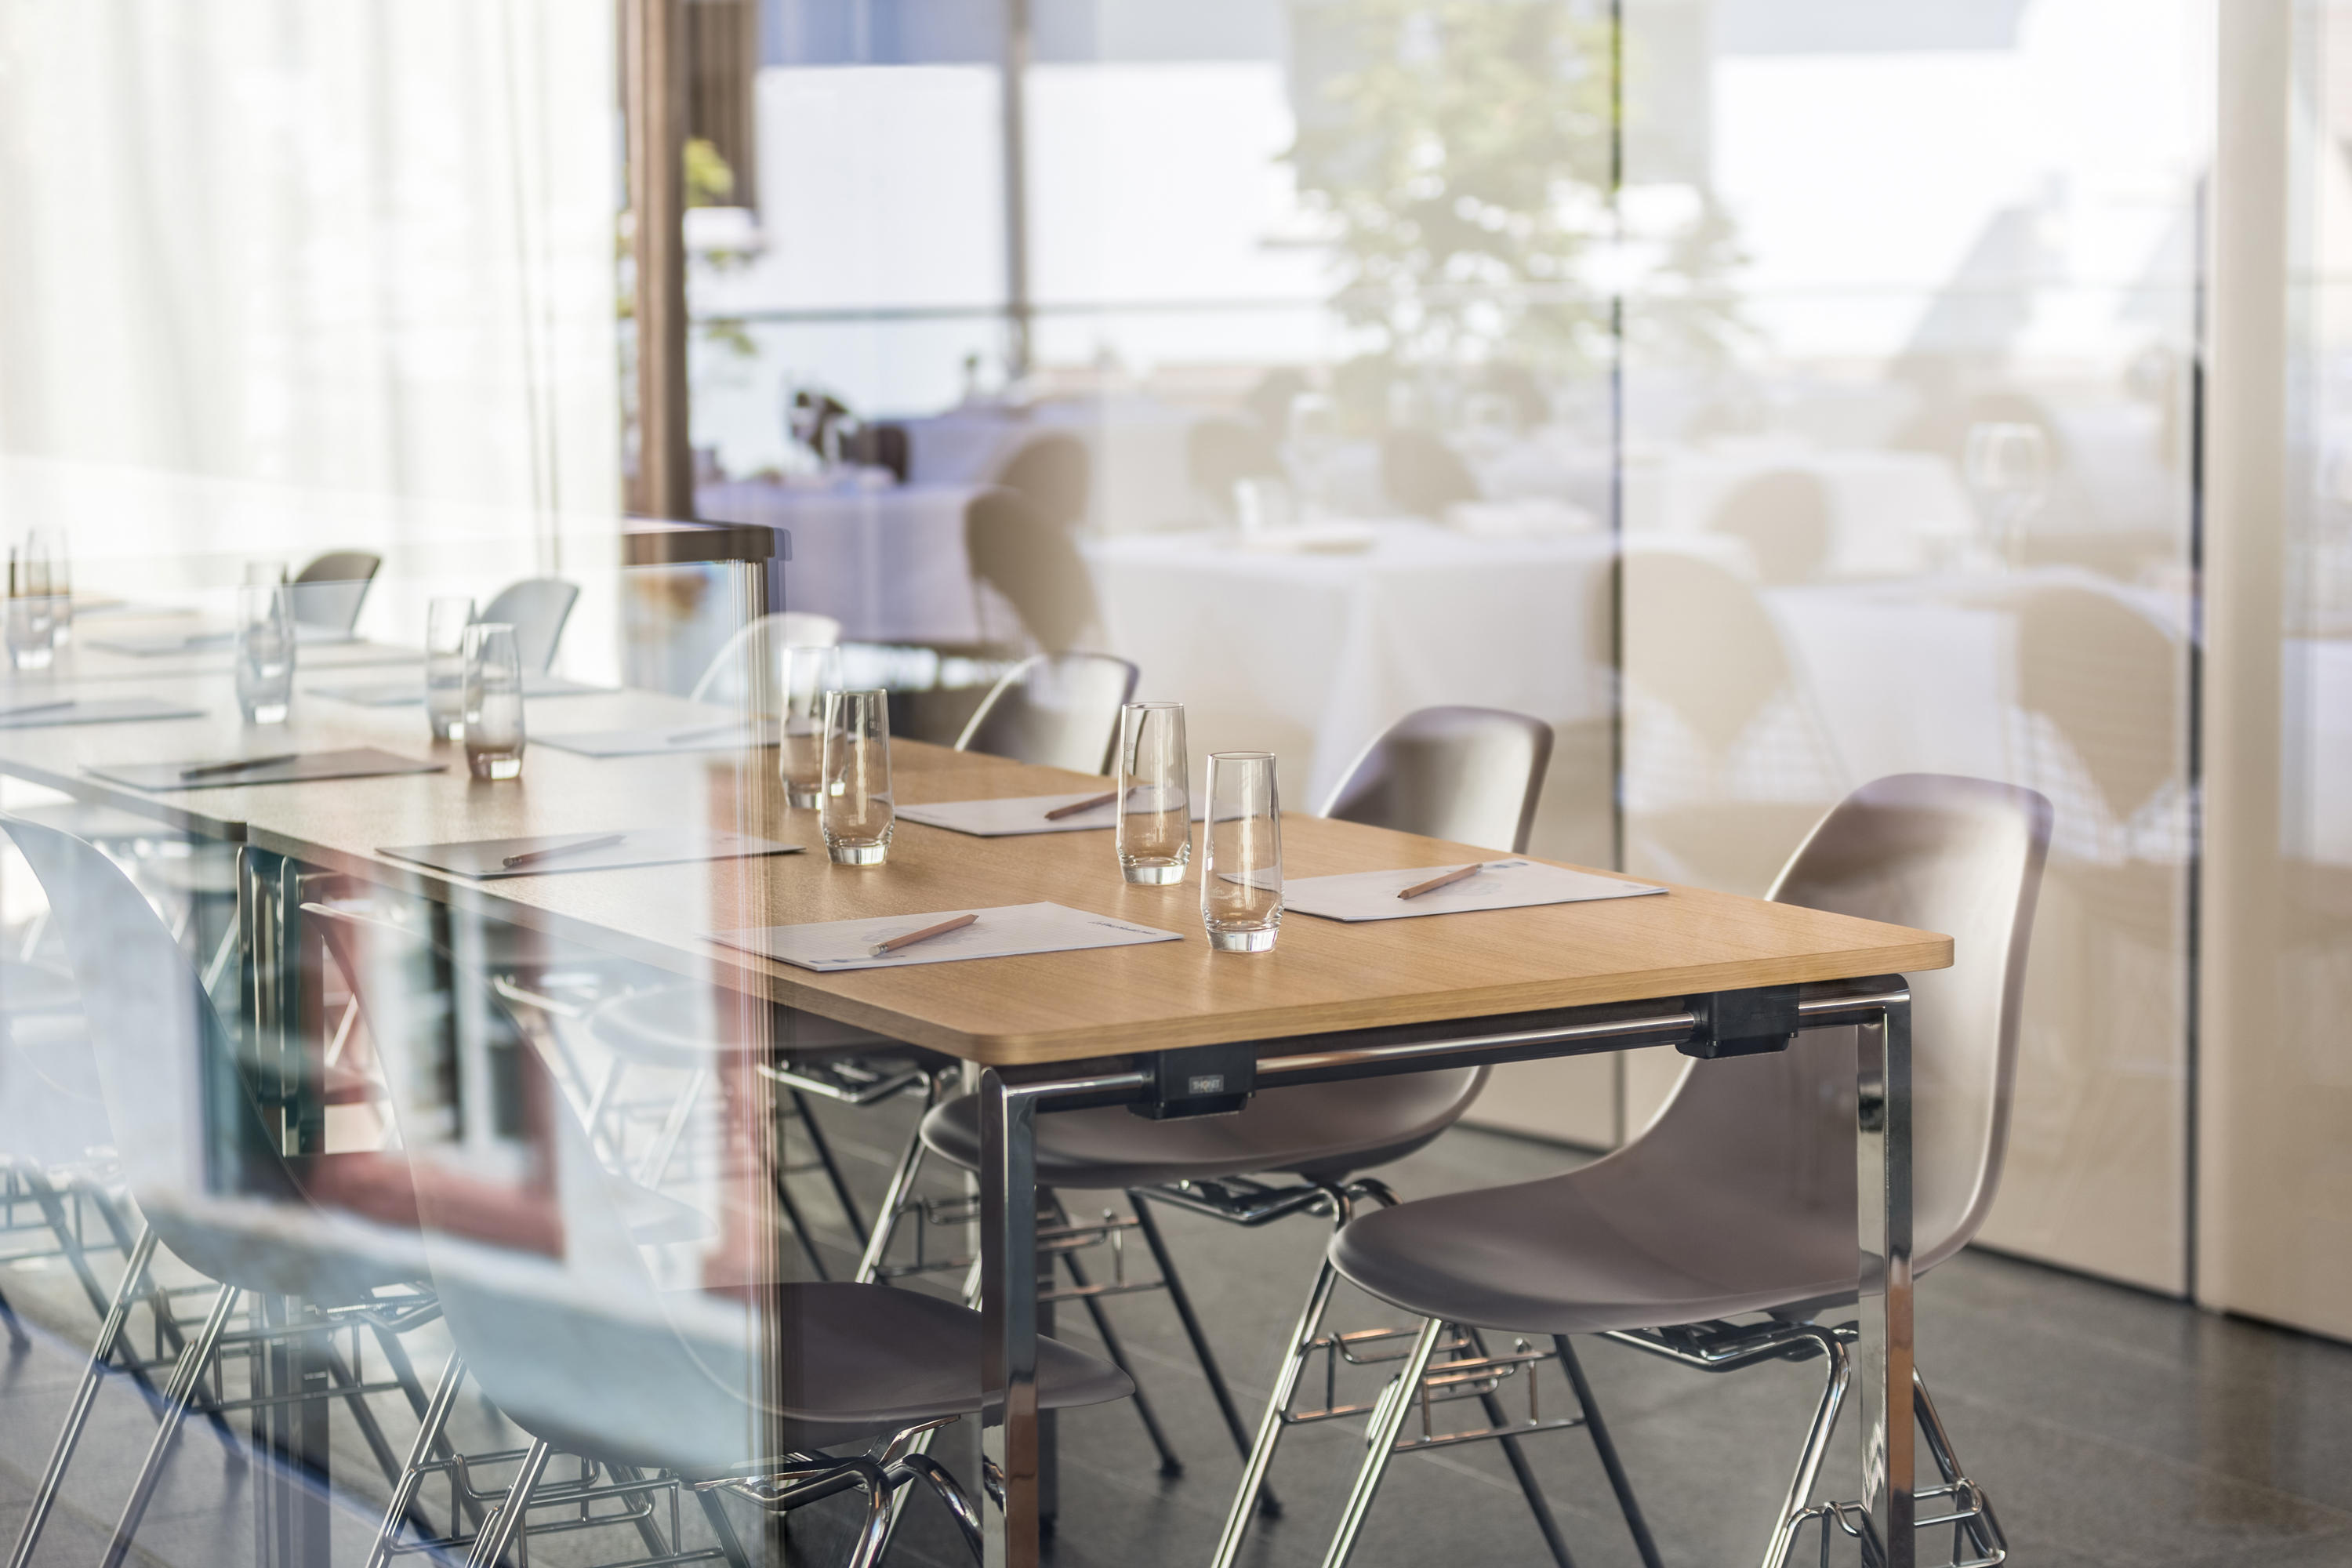 S 1195/1 EVO - Individual seminar tables from Thonet | Architonic